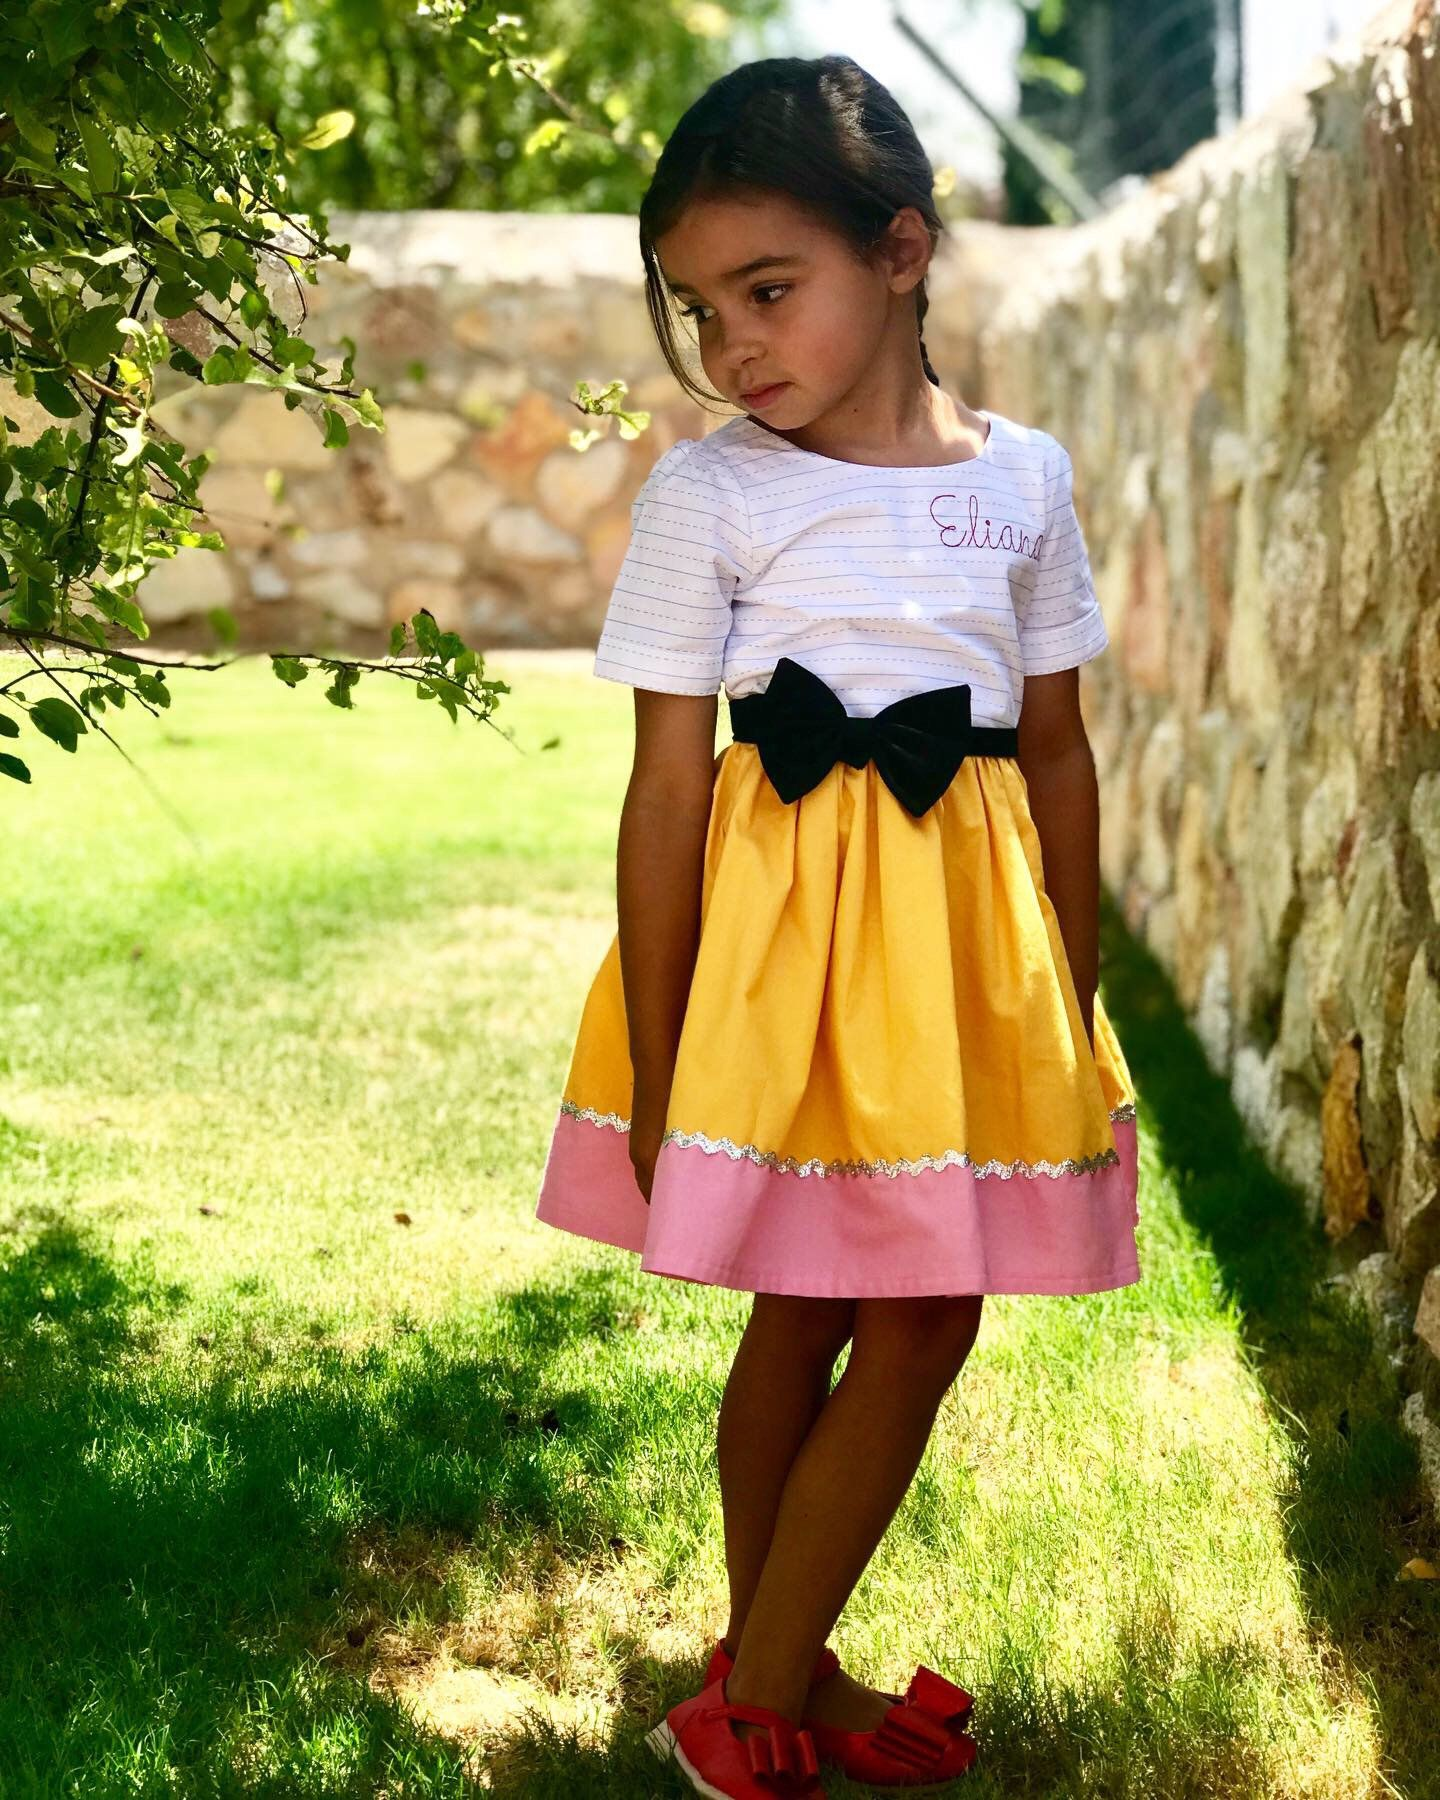 Girl's Pencil Dress, Girl's Back to School Dress, First Day of School Dress, Girl's First Day of School Outfit, Pencil Inspired Dress #firstdayofschooloutfits